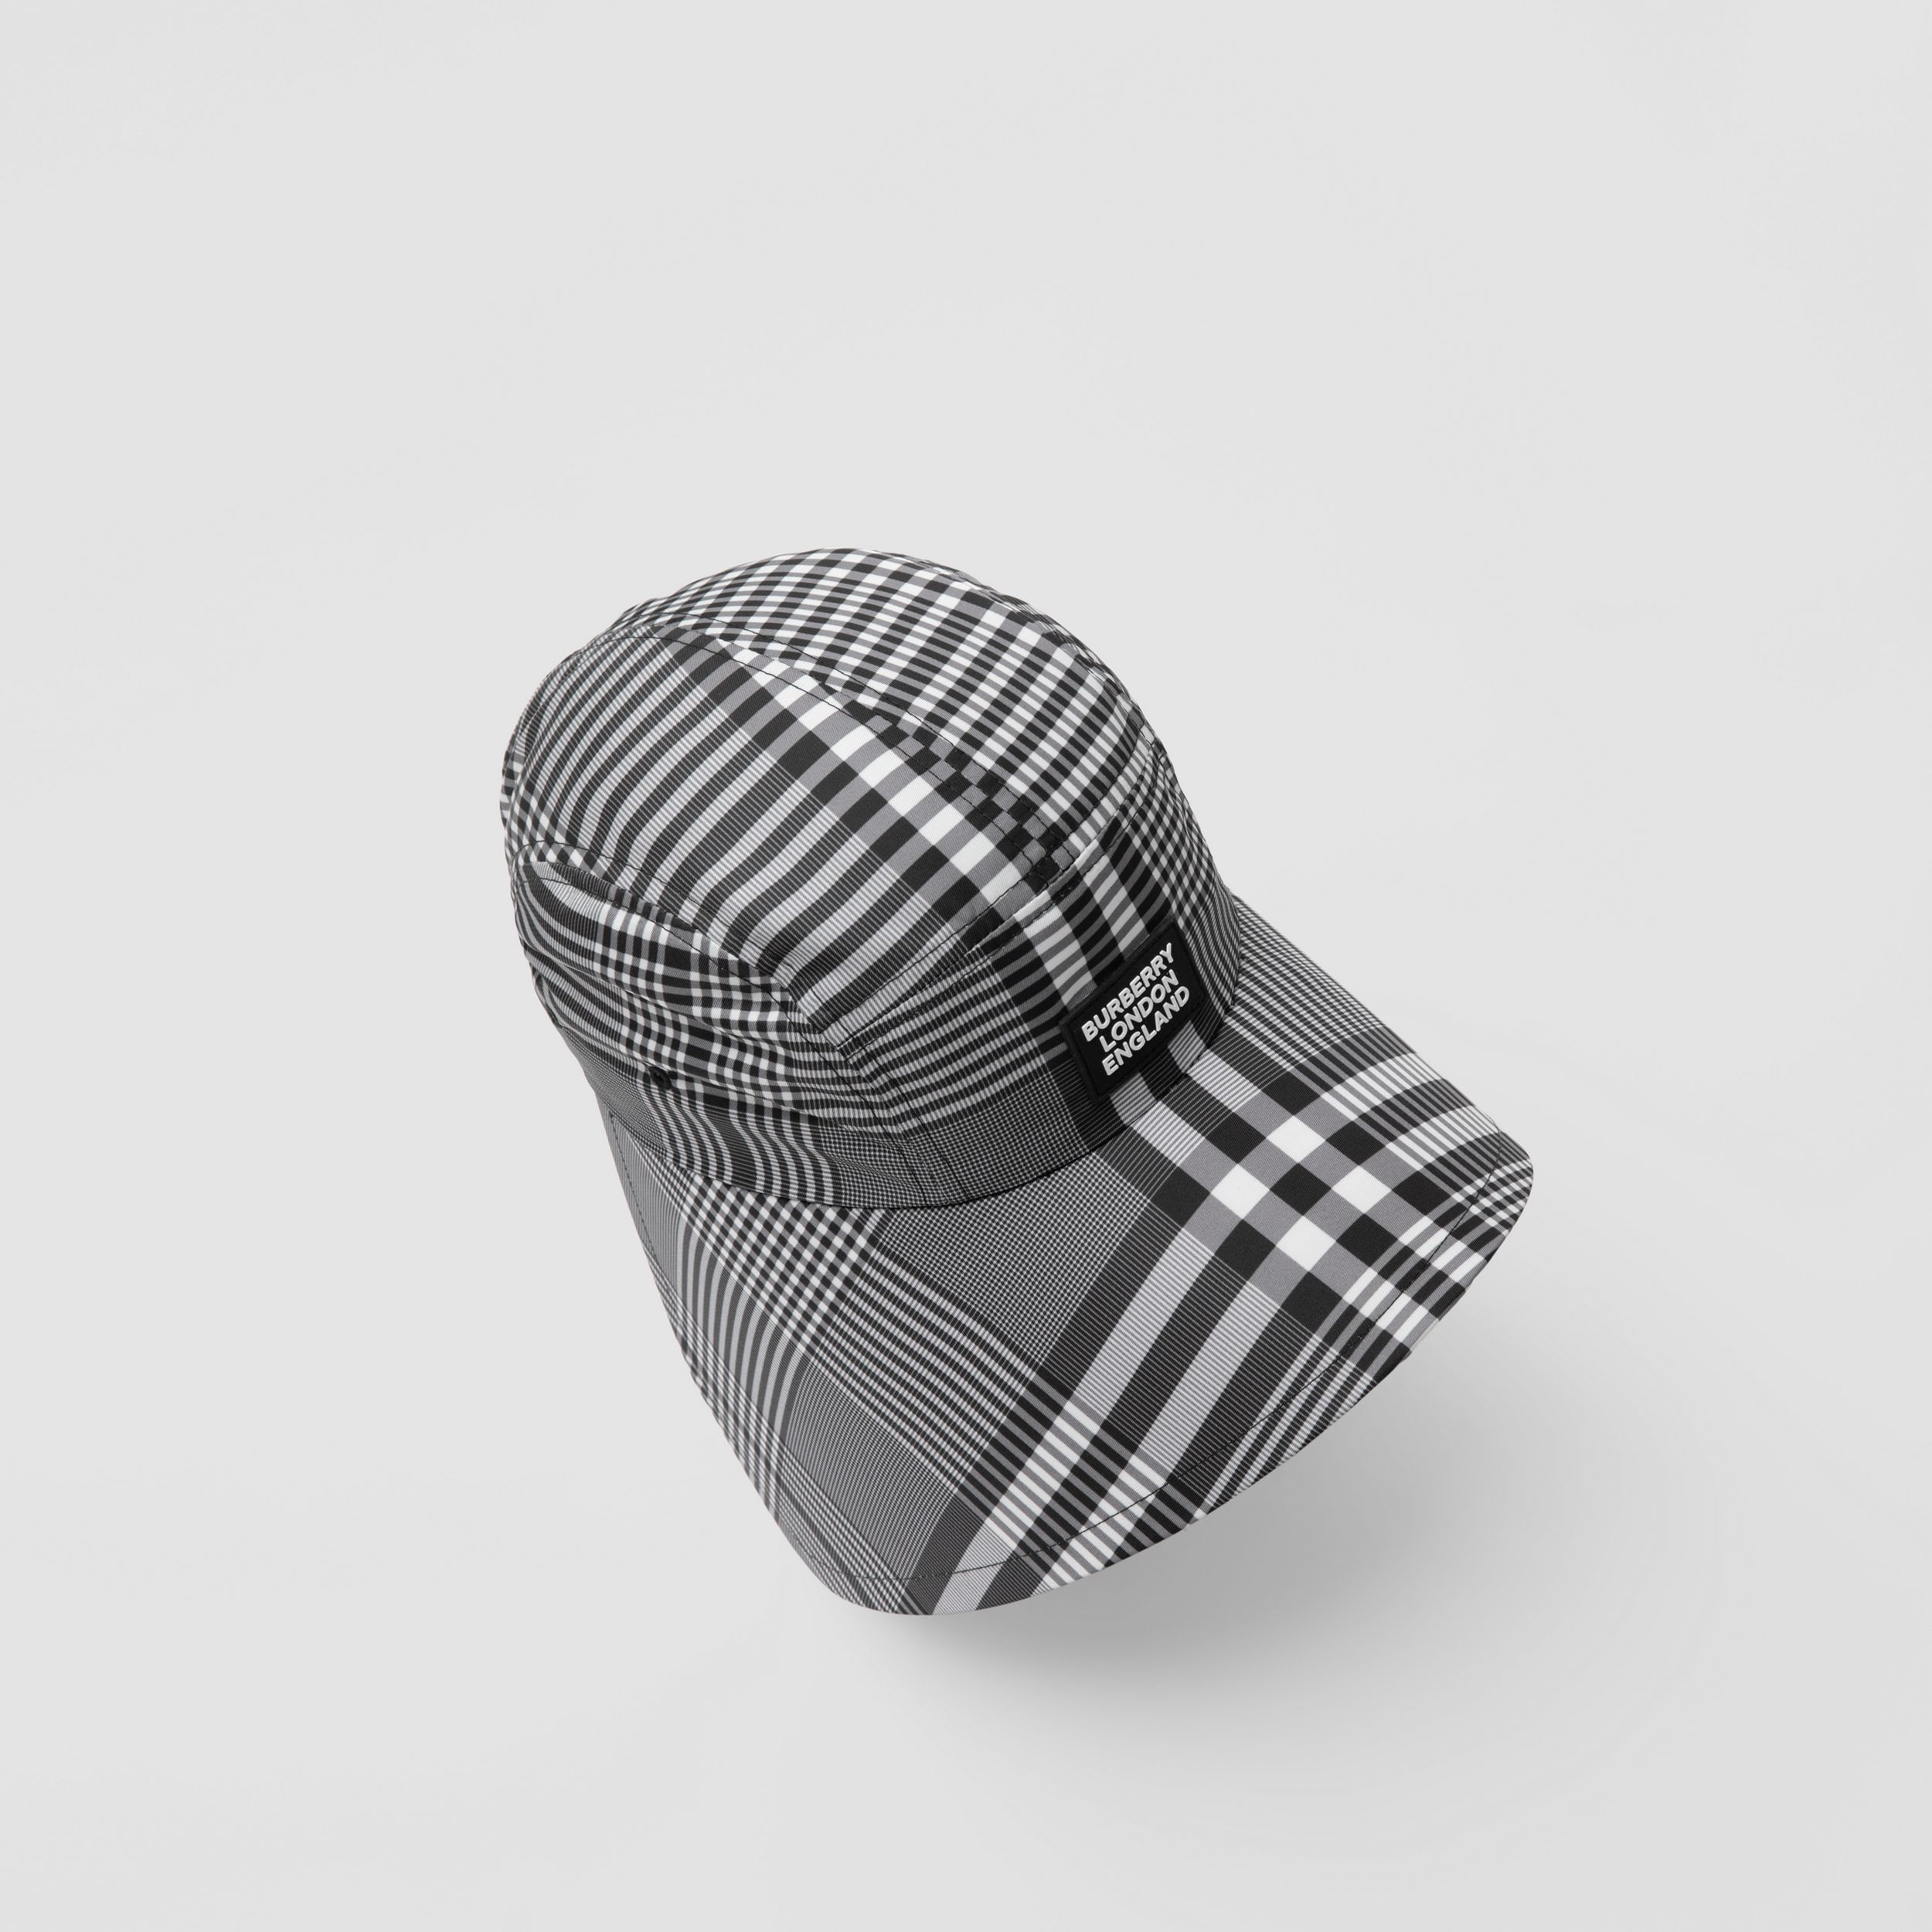 Logo Appliqué Check Bonnet Cap in Black/white | Burberry - 2